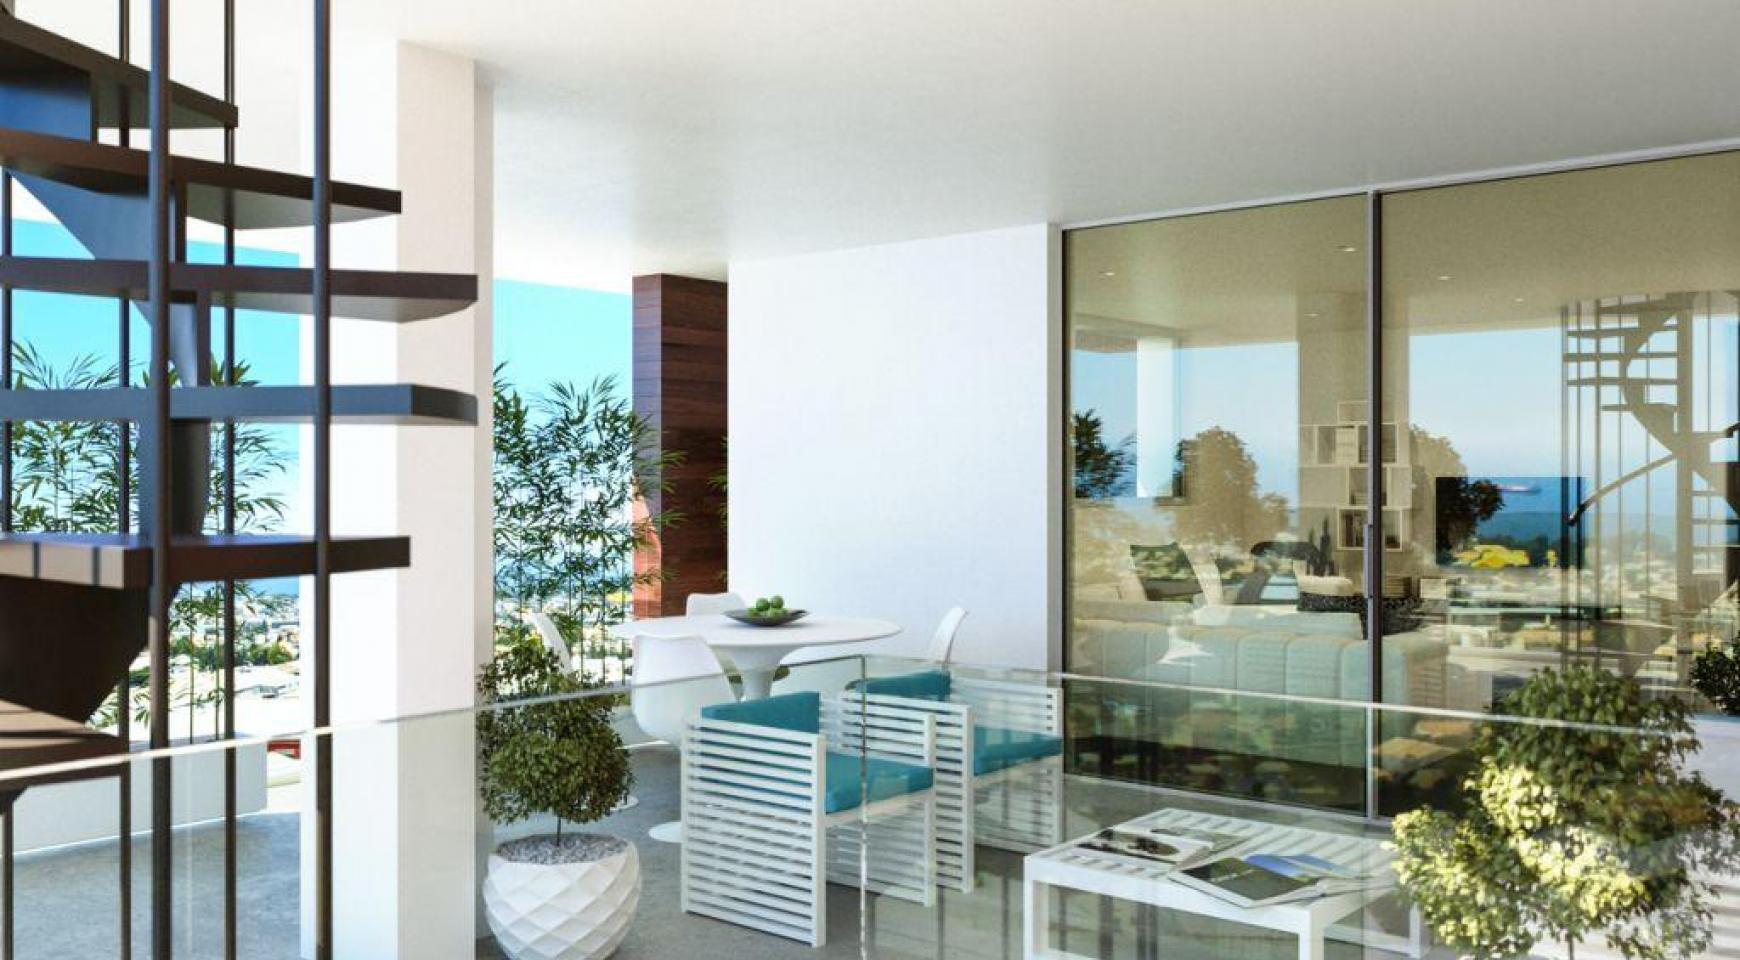 Contemporary 2 Bedroom Apartment in a New Project in Columbia Area - 4